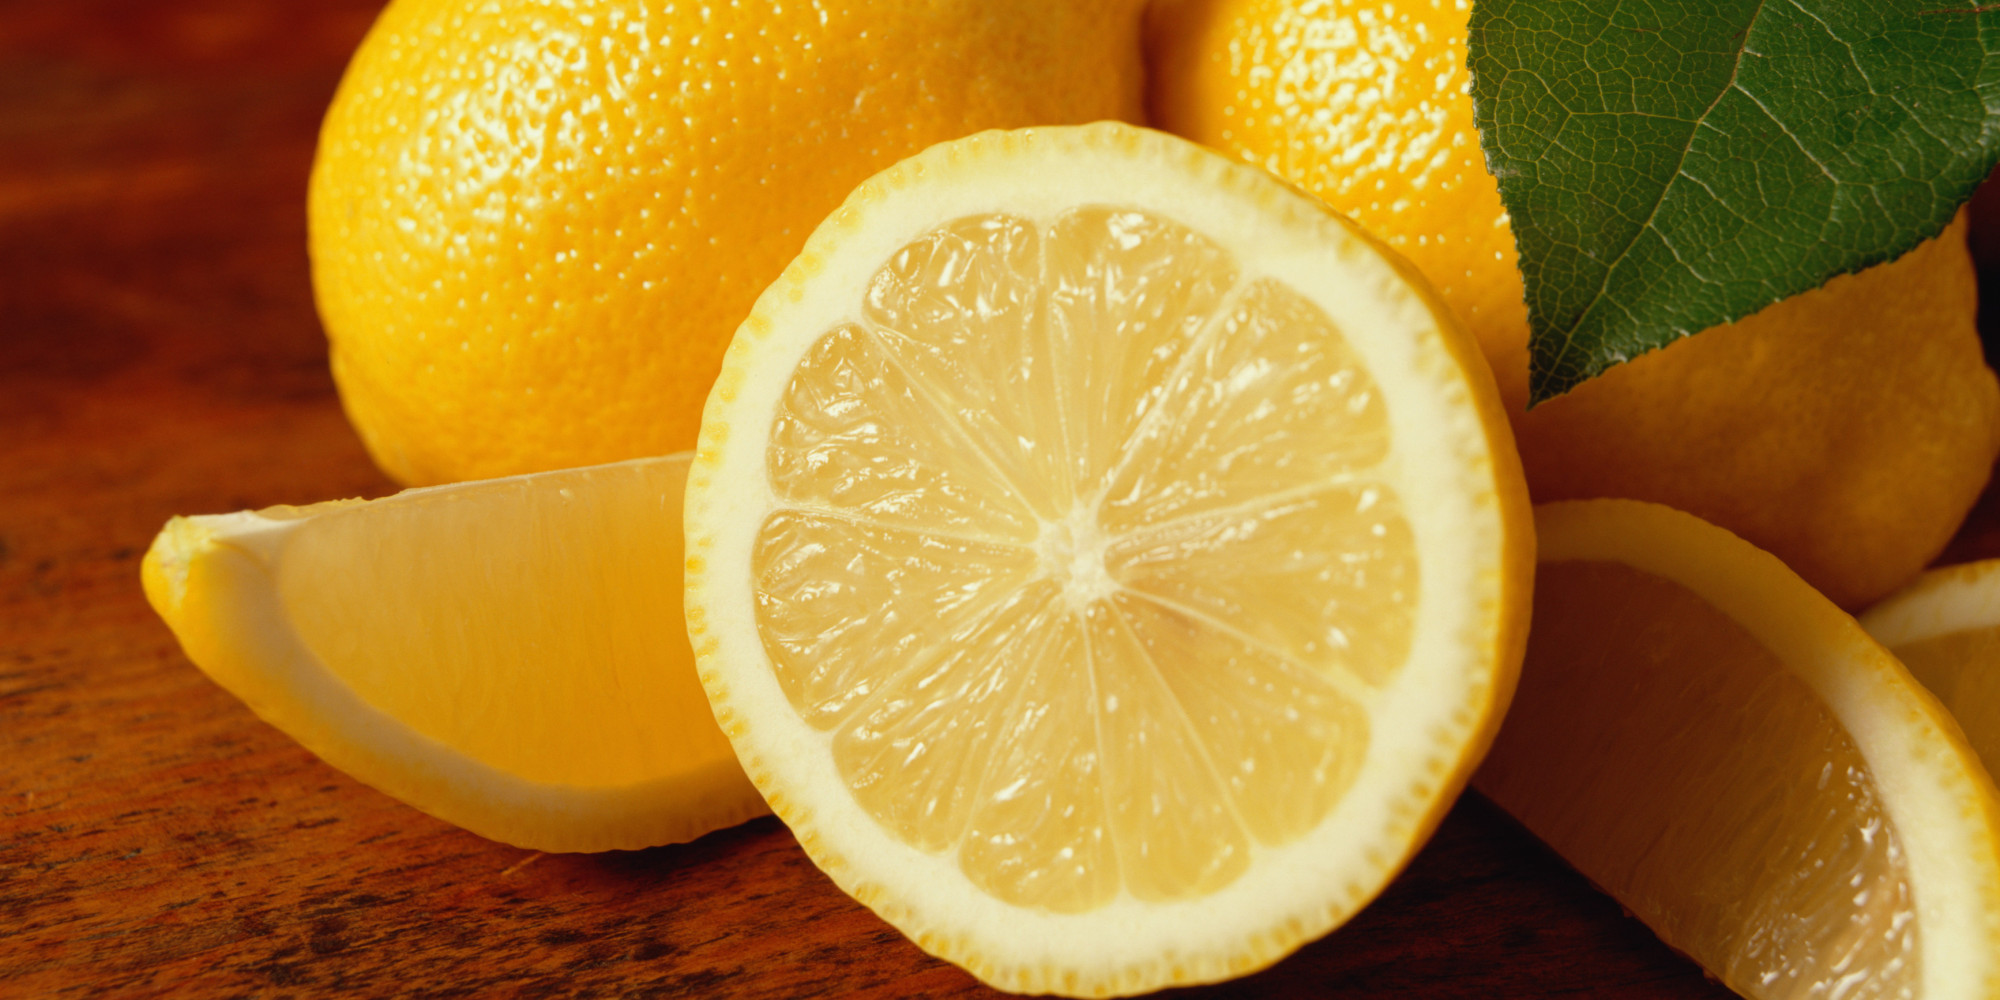 Microwave That Lemon Before You Juice It For An Easier